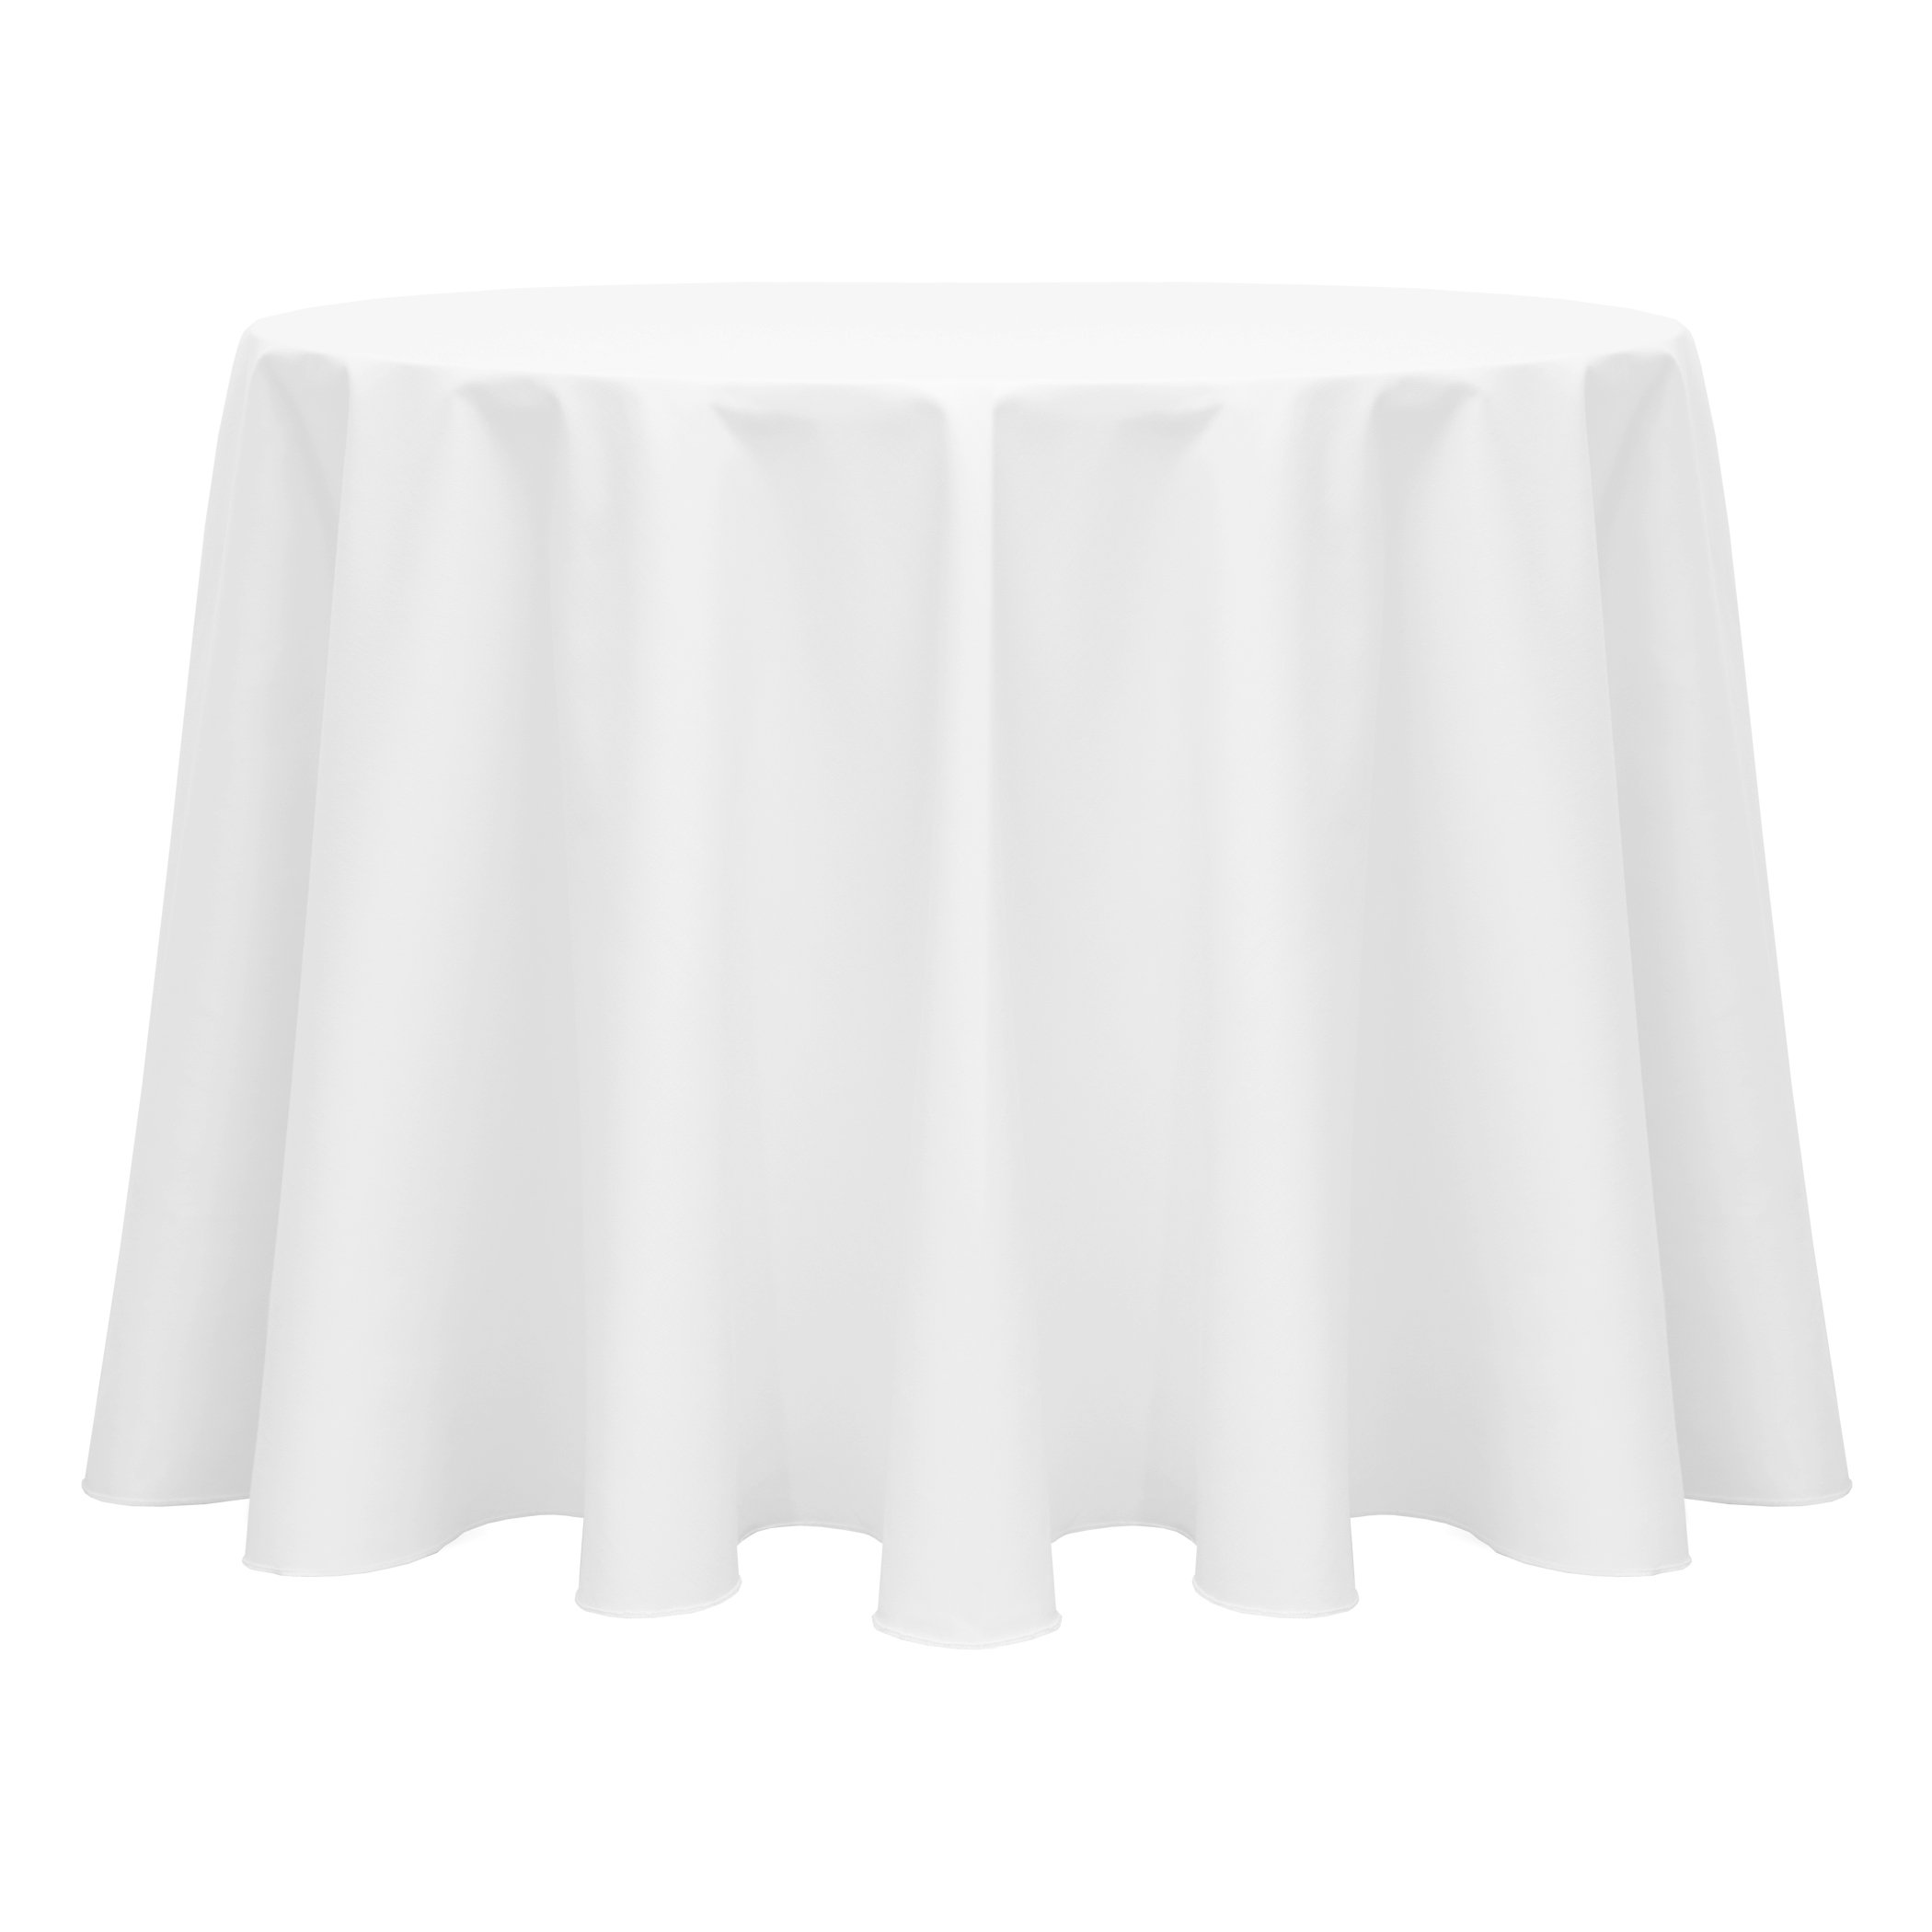 Ultimate Textile (5 Pack) Poly-cotton Twill 108-Inch Round Tablecloth - for Restaurant and Catering, Hotel or Home Dining use, White